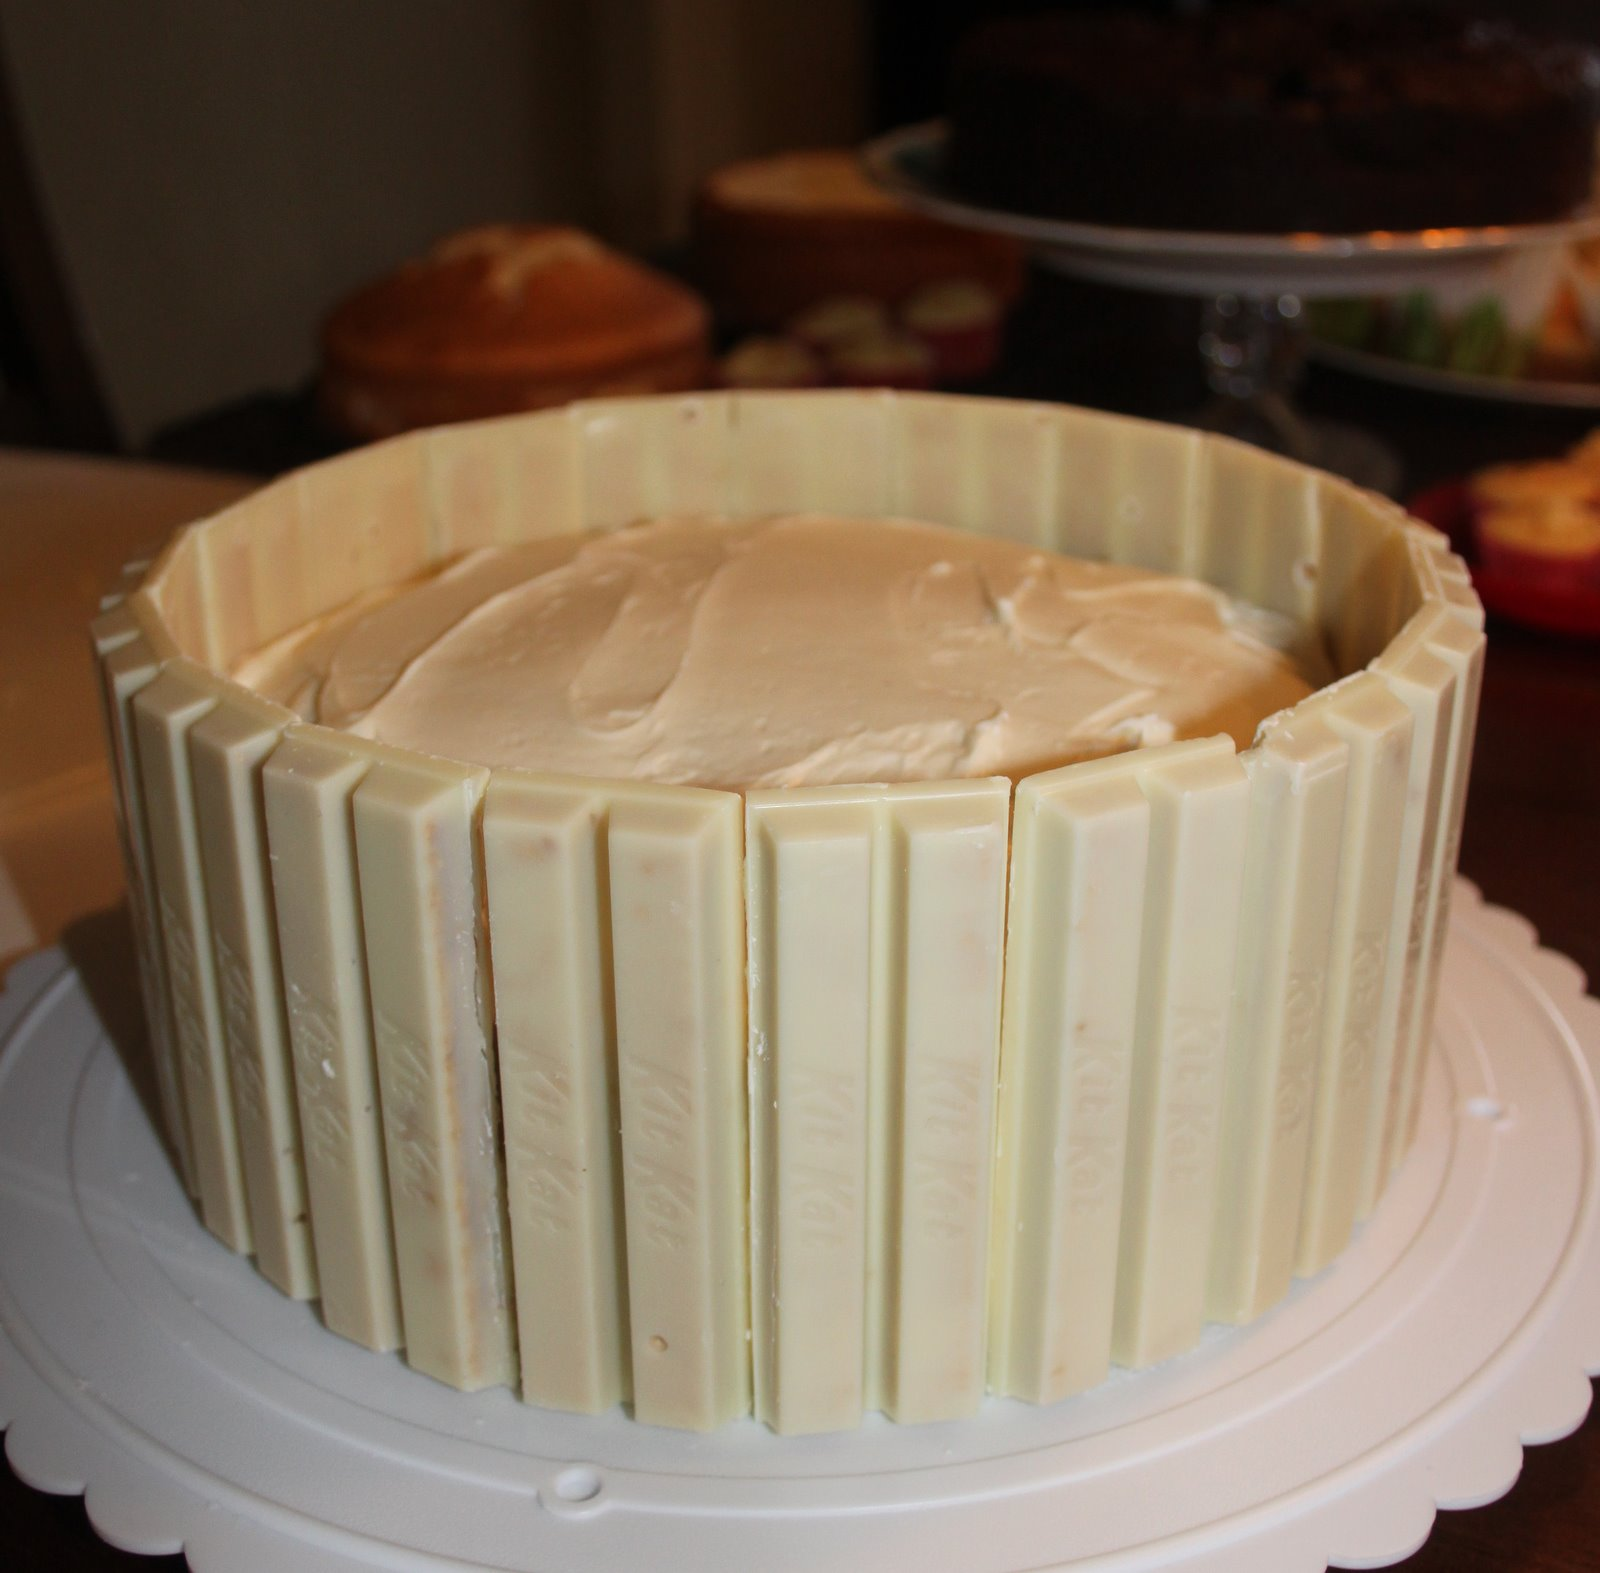 Real Life Pastor's Wife: White Chocolate Kit Kat Coconut M&M's Cake